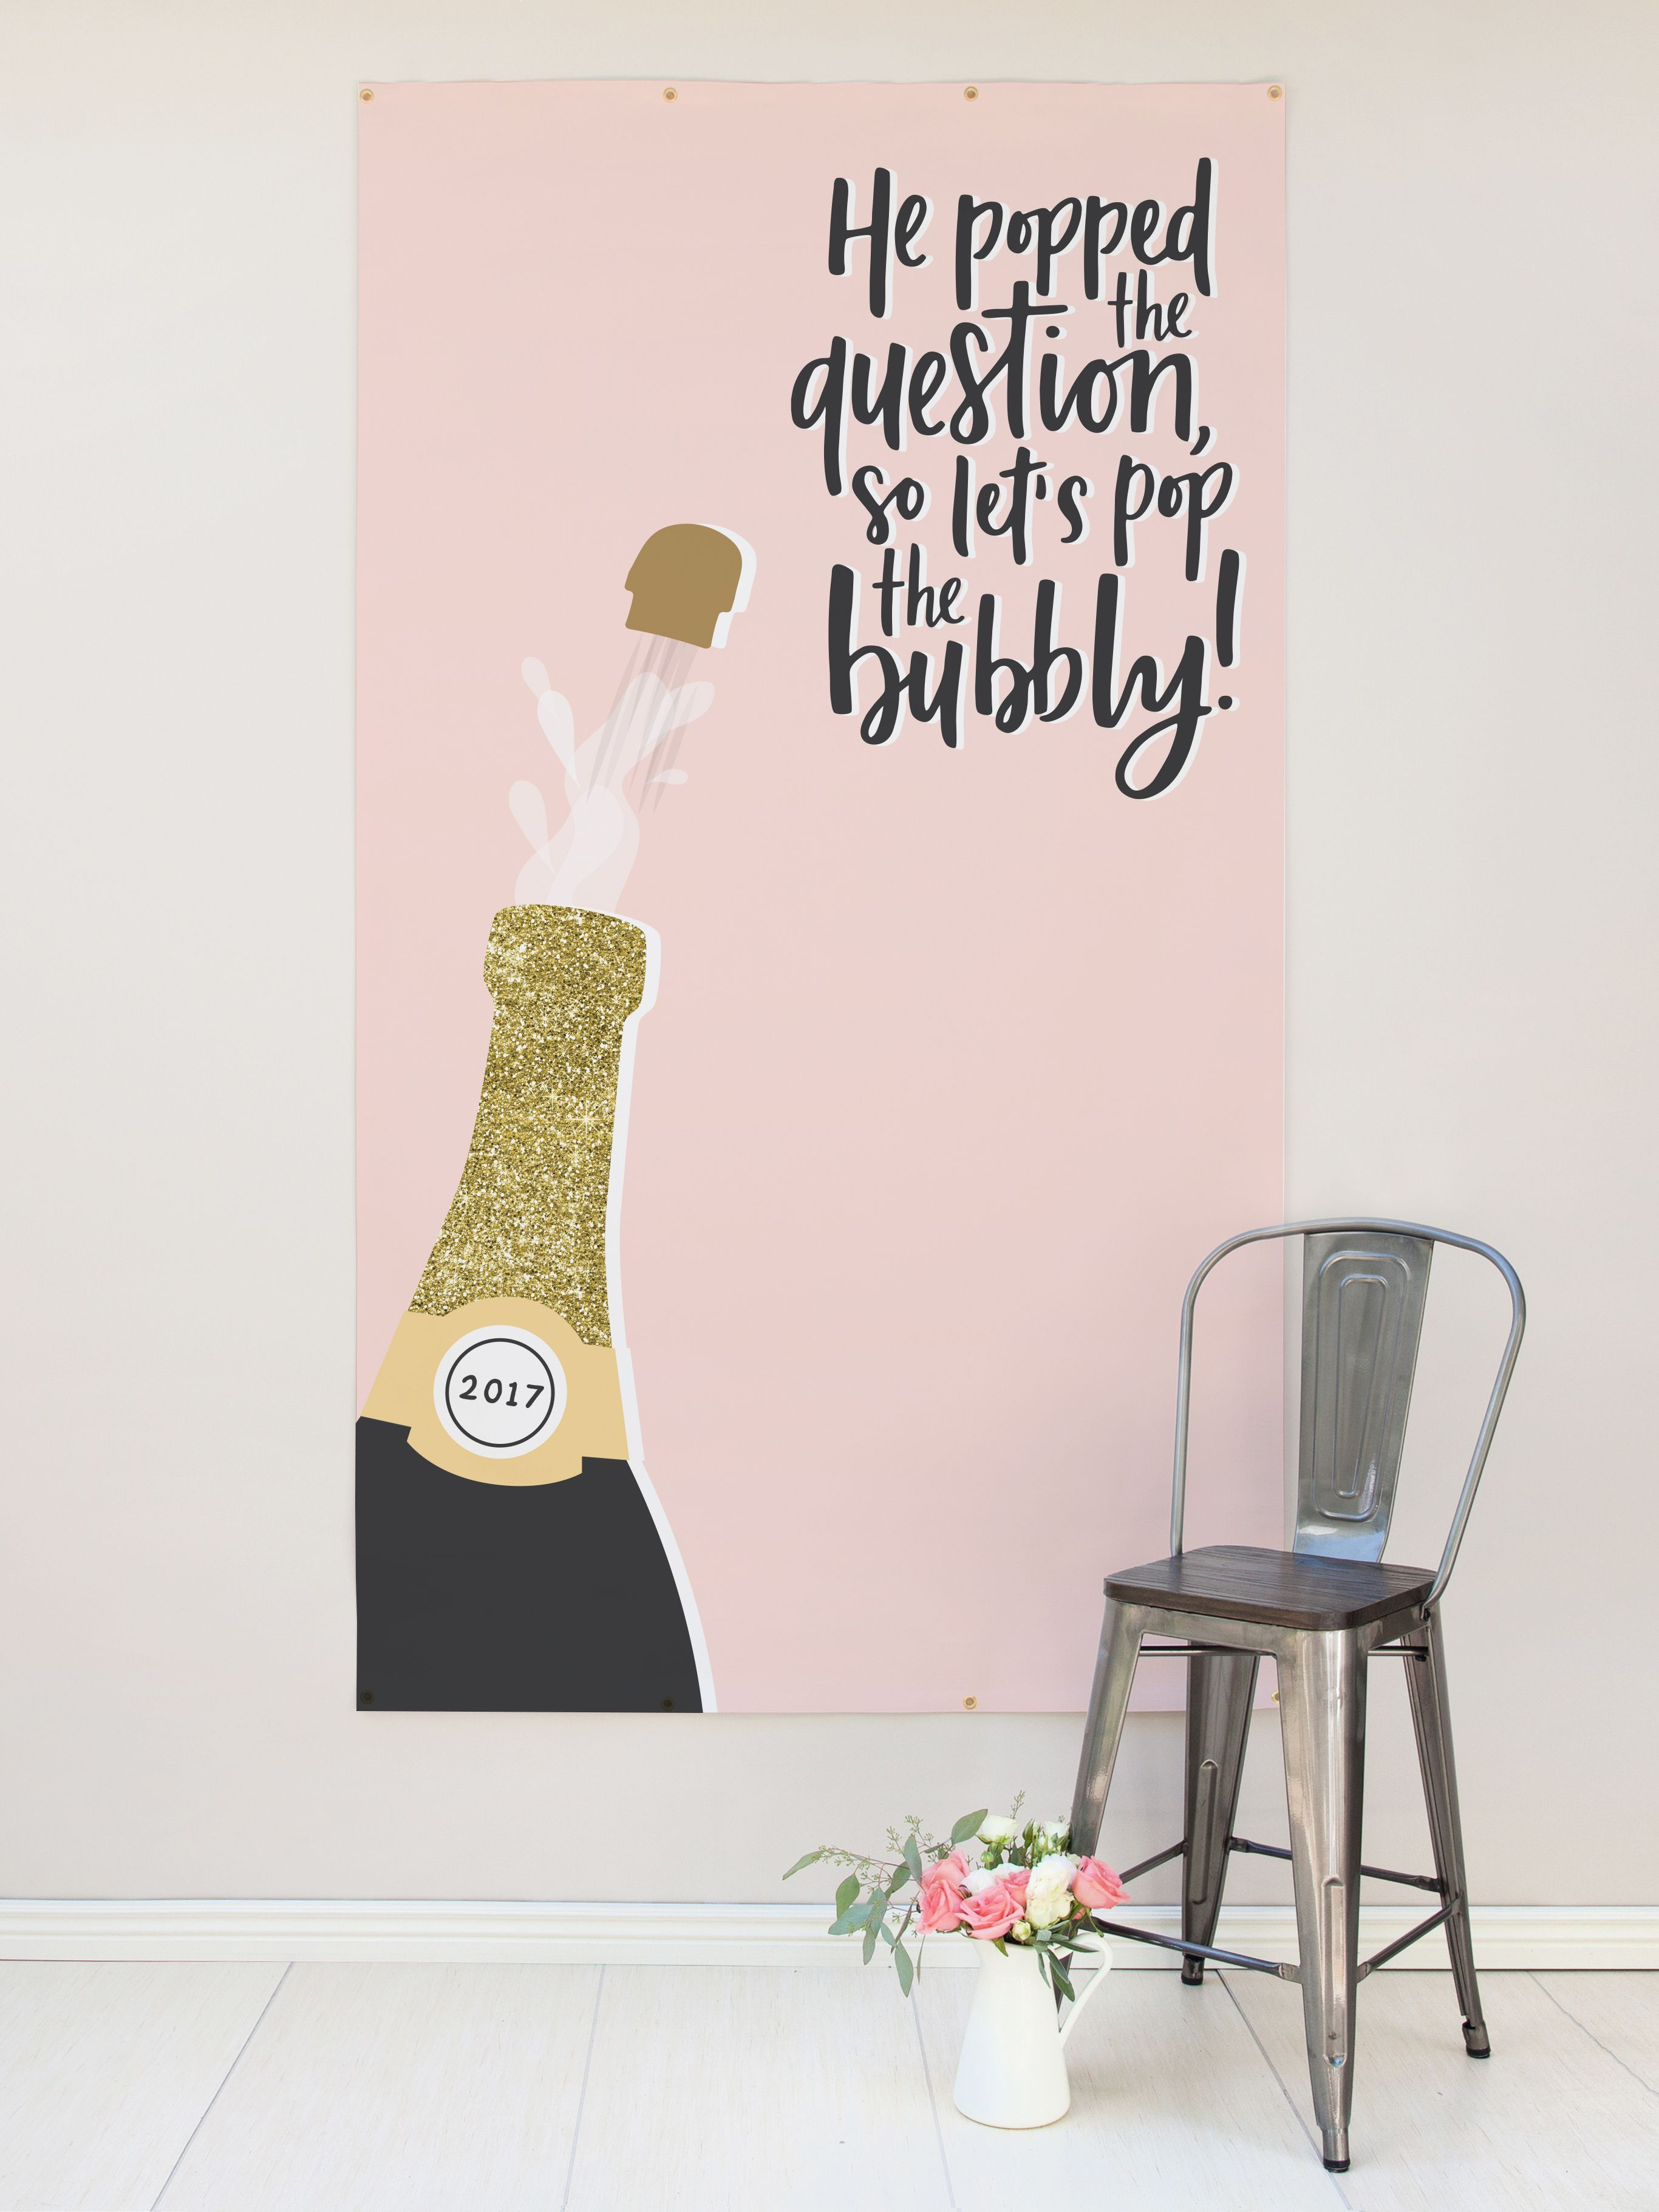 Our Engagement Party Backdrop features handmade calligraphy with illustration, and makes the perfect engagement party decor.